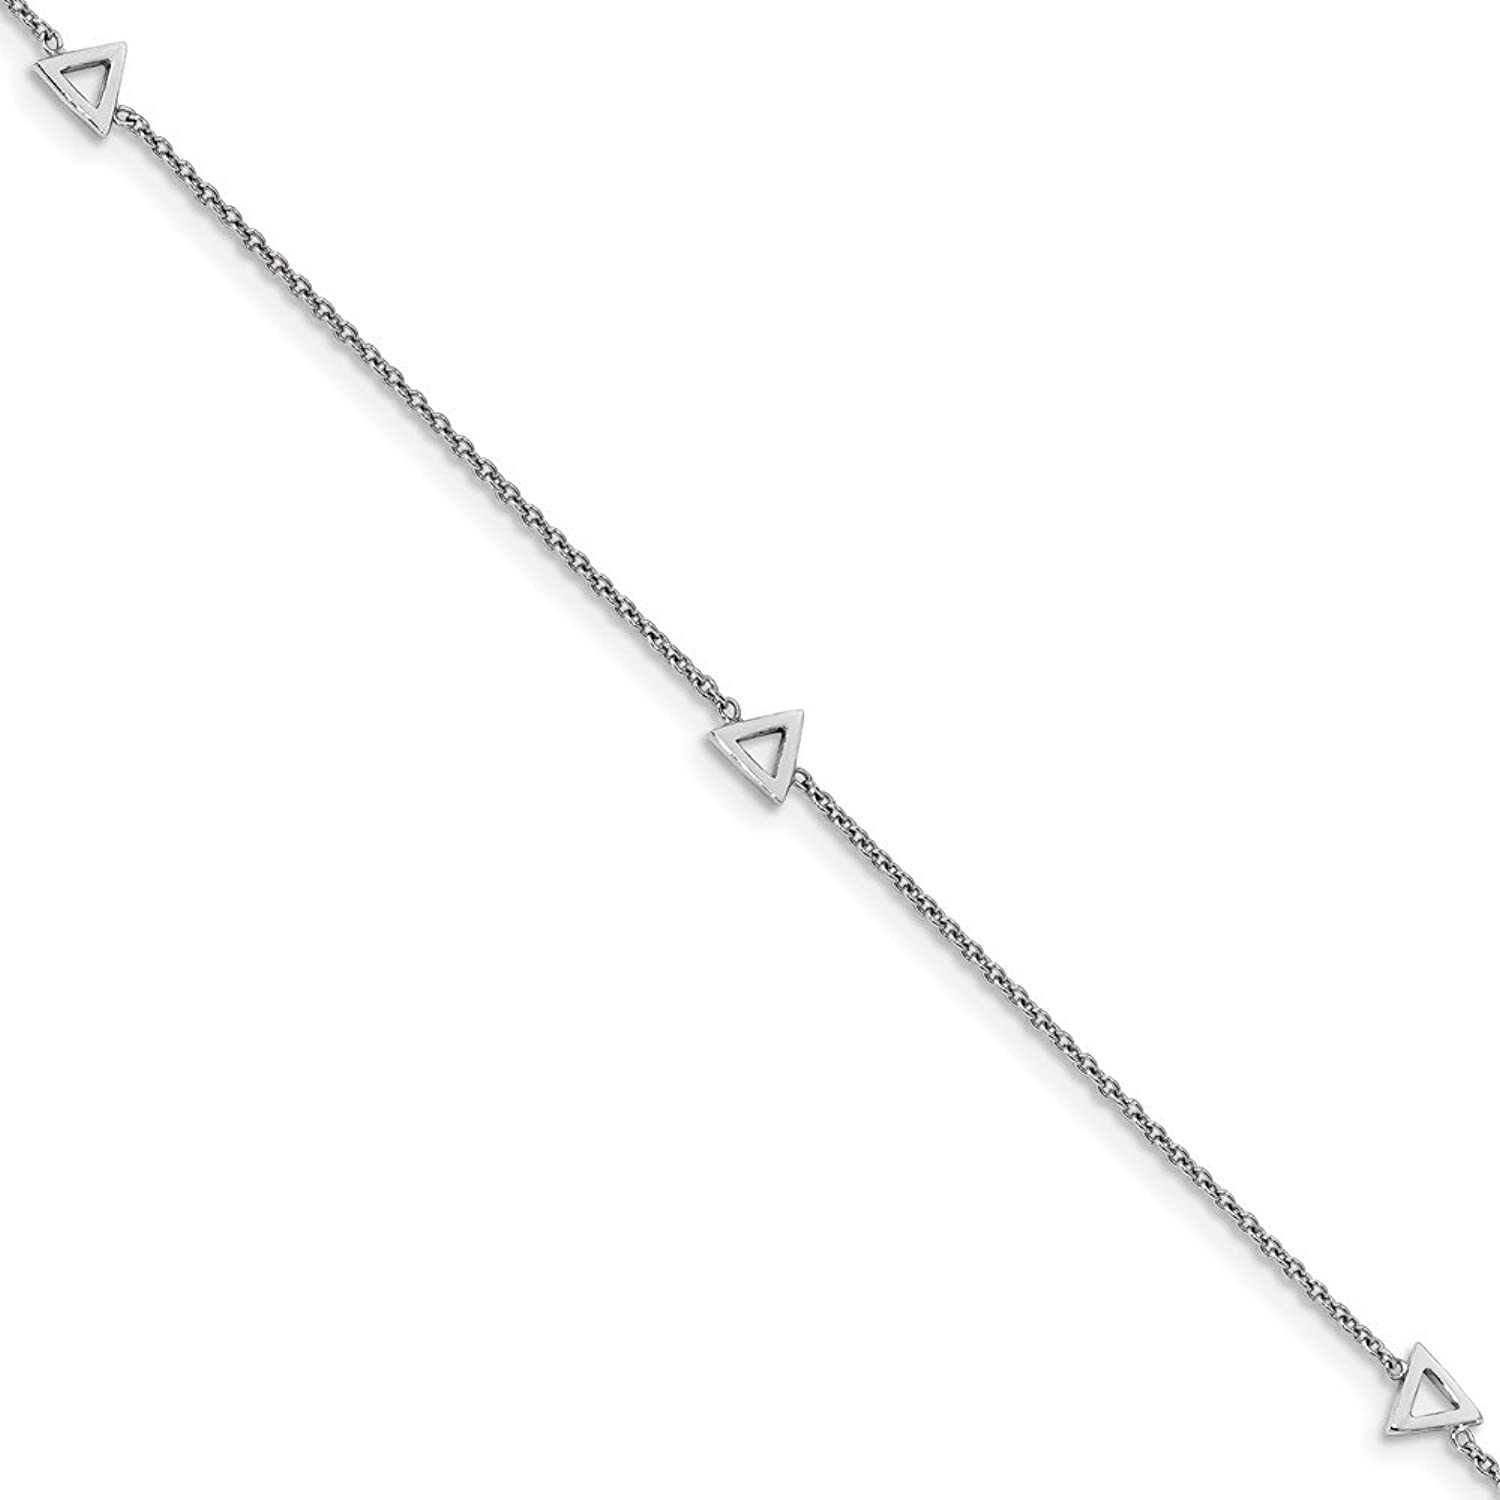 Sterling Silver Rhodium-plated Polished Triangle With 1inch Ext. Anklet - 9 Inch